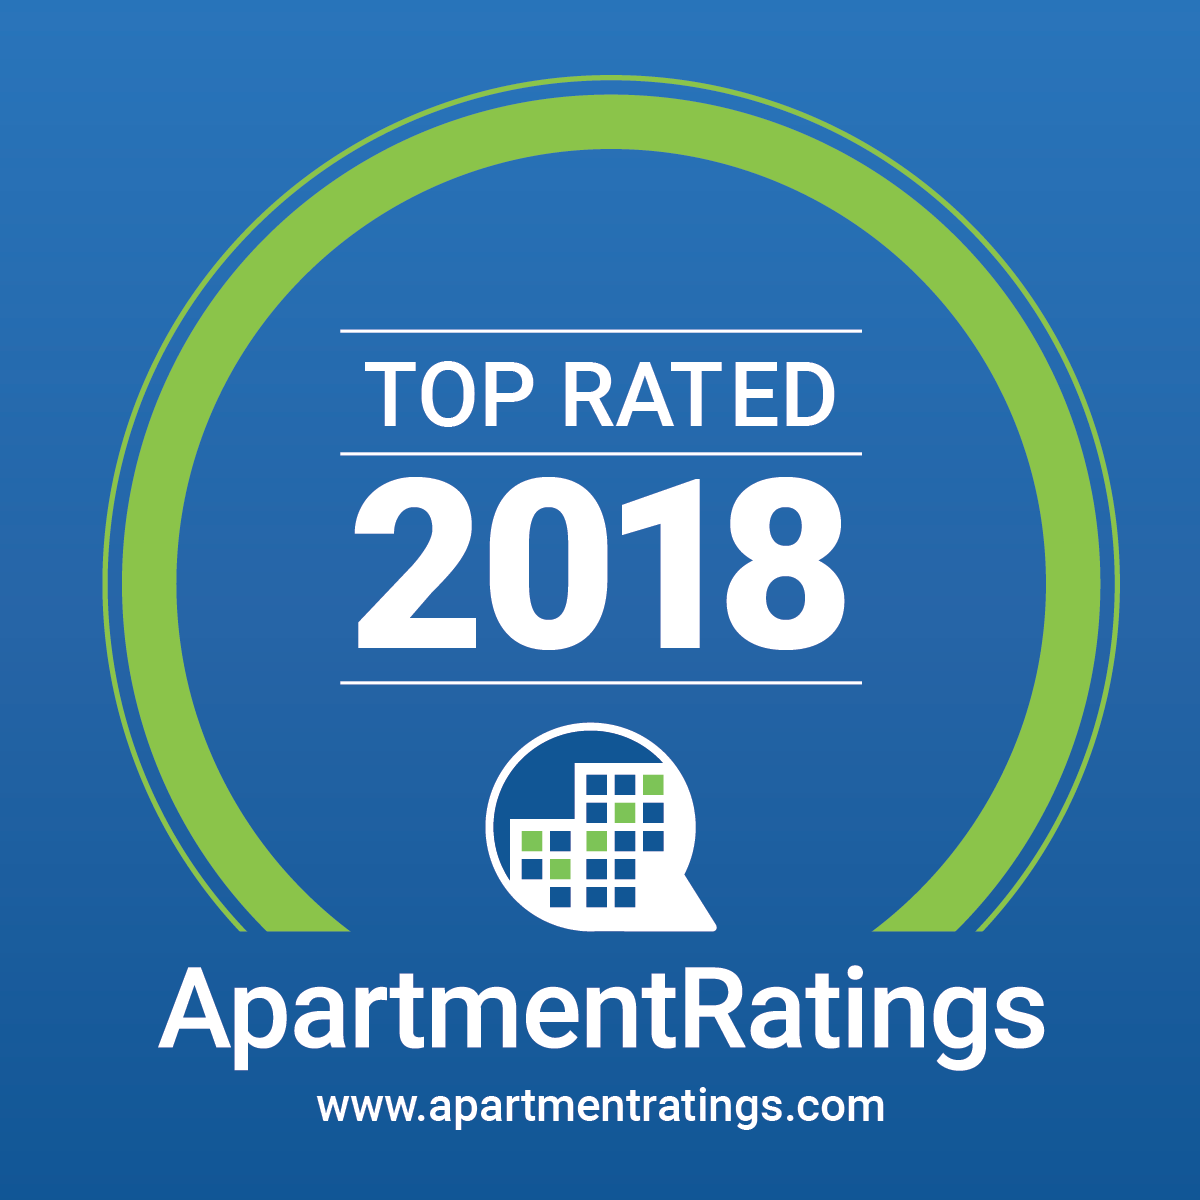 Apartmentratings.com Top Rated Community 2018